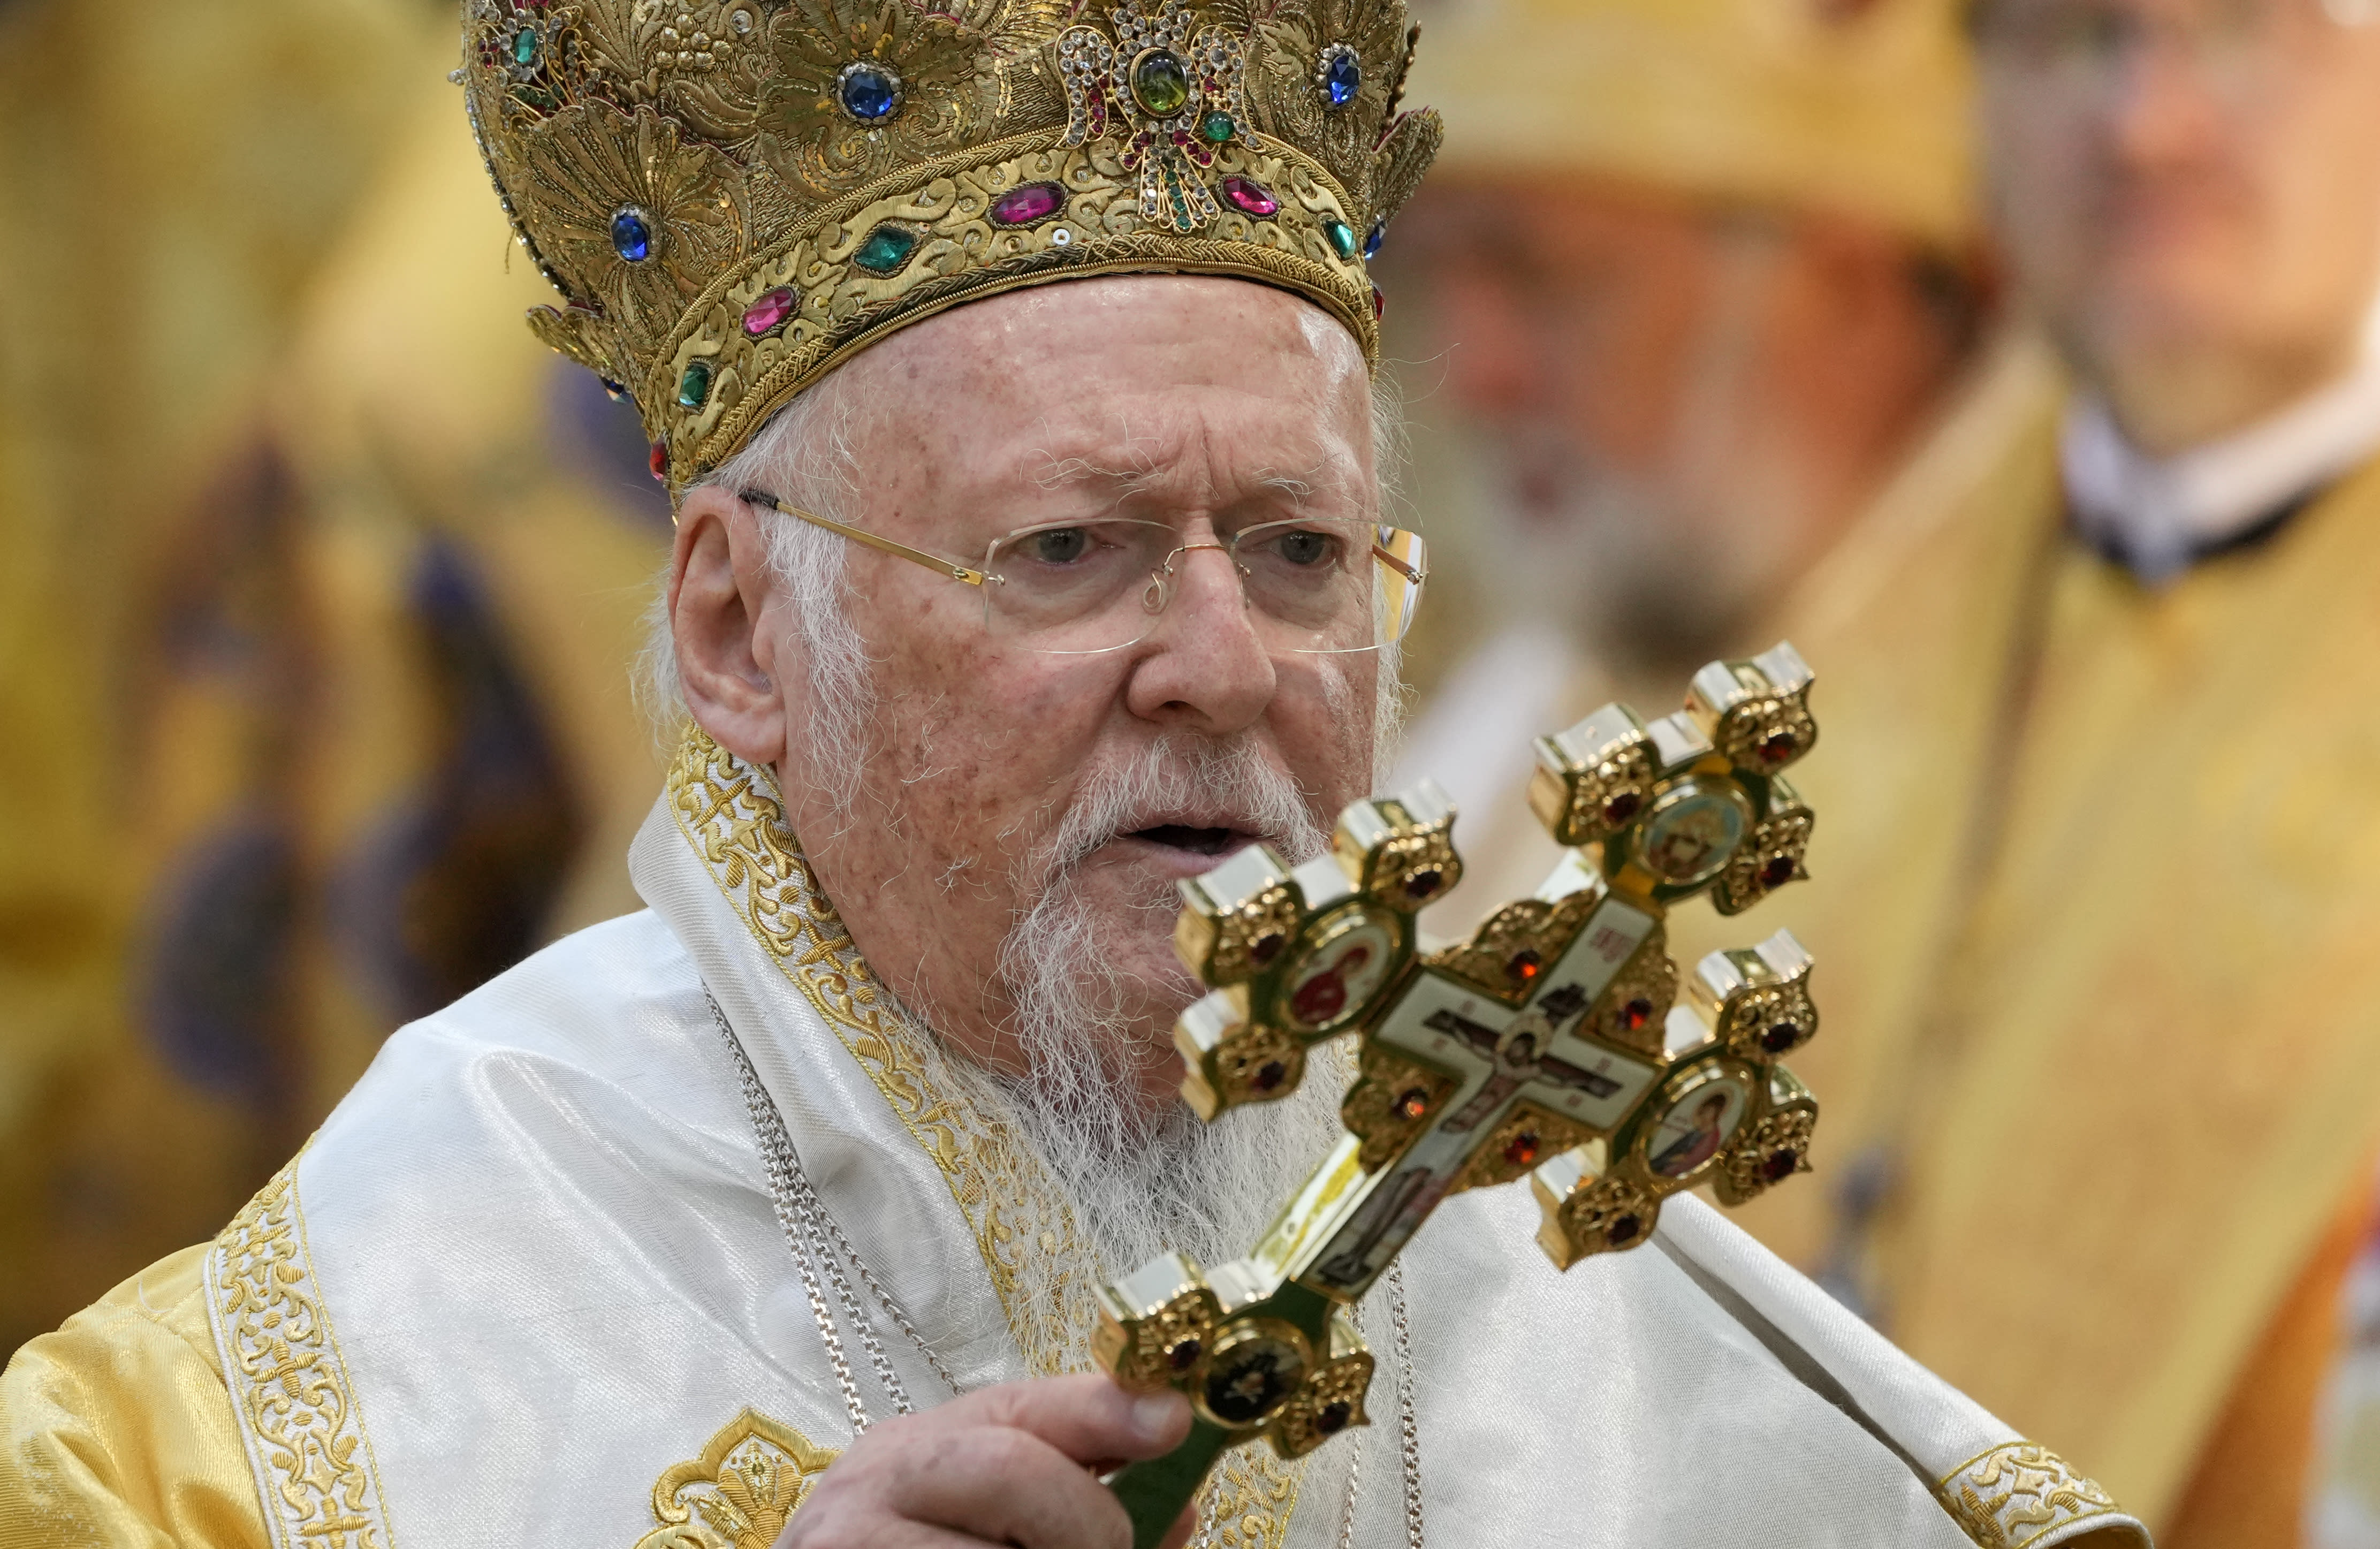 Orthodox patriarch hospitalized at start of 12-day US visit